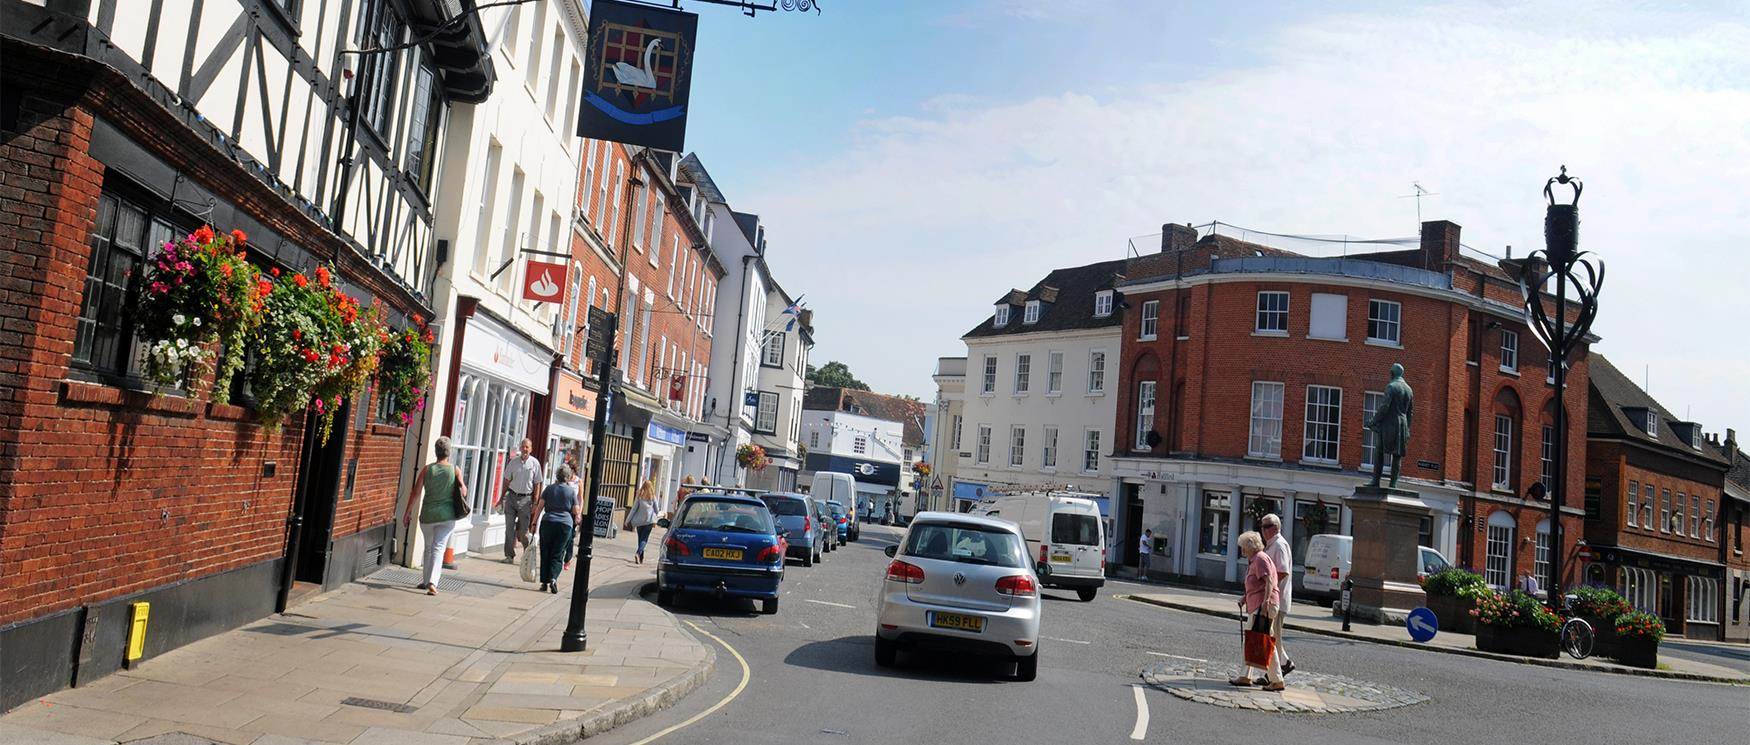 Romsey Town Centre in the Test Valley